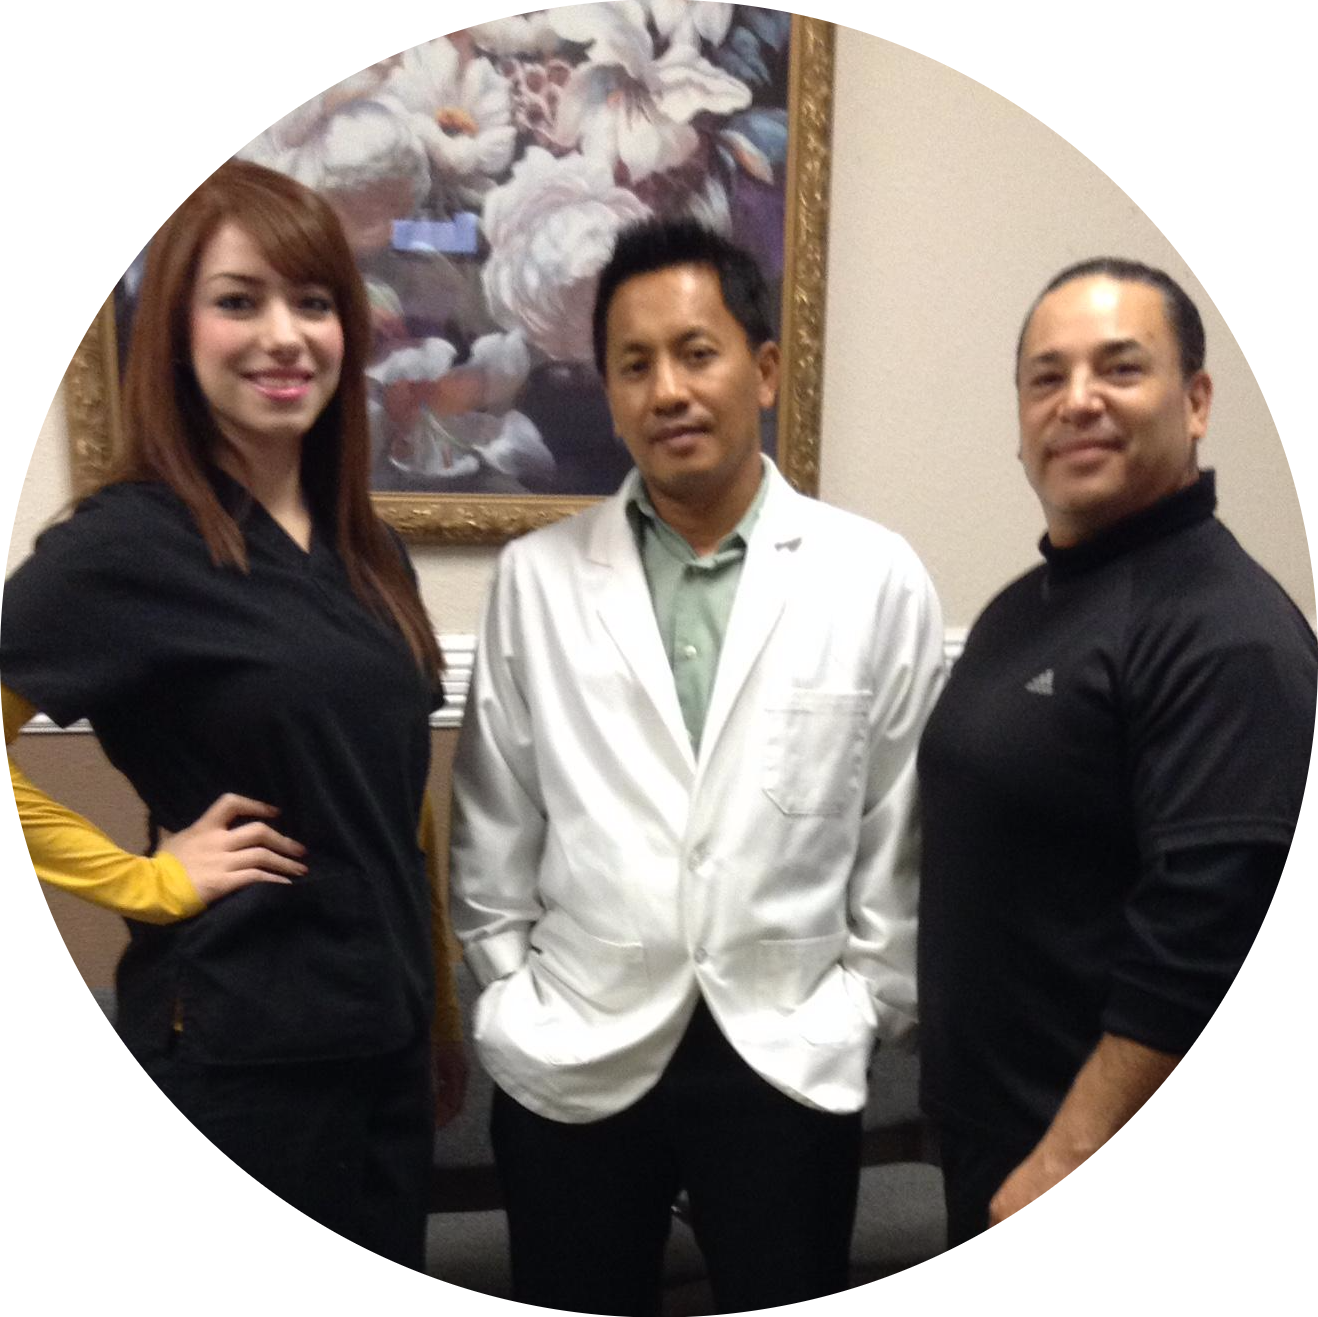 Glenview california physical therapy - 2